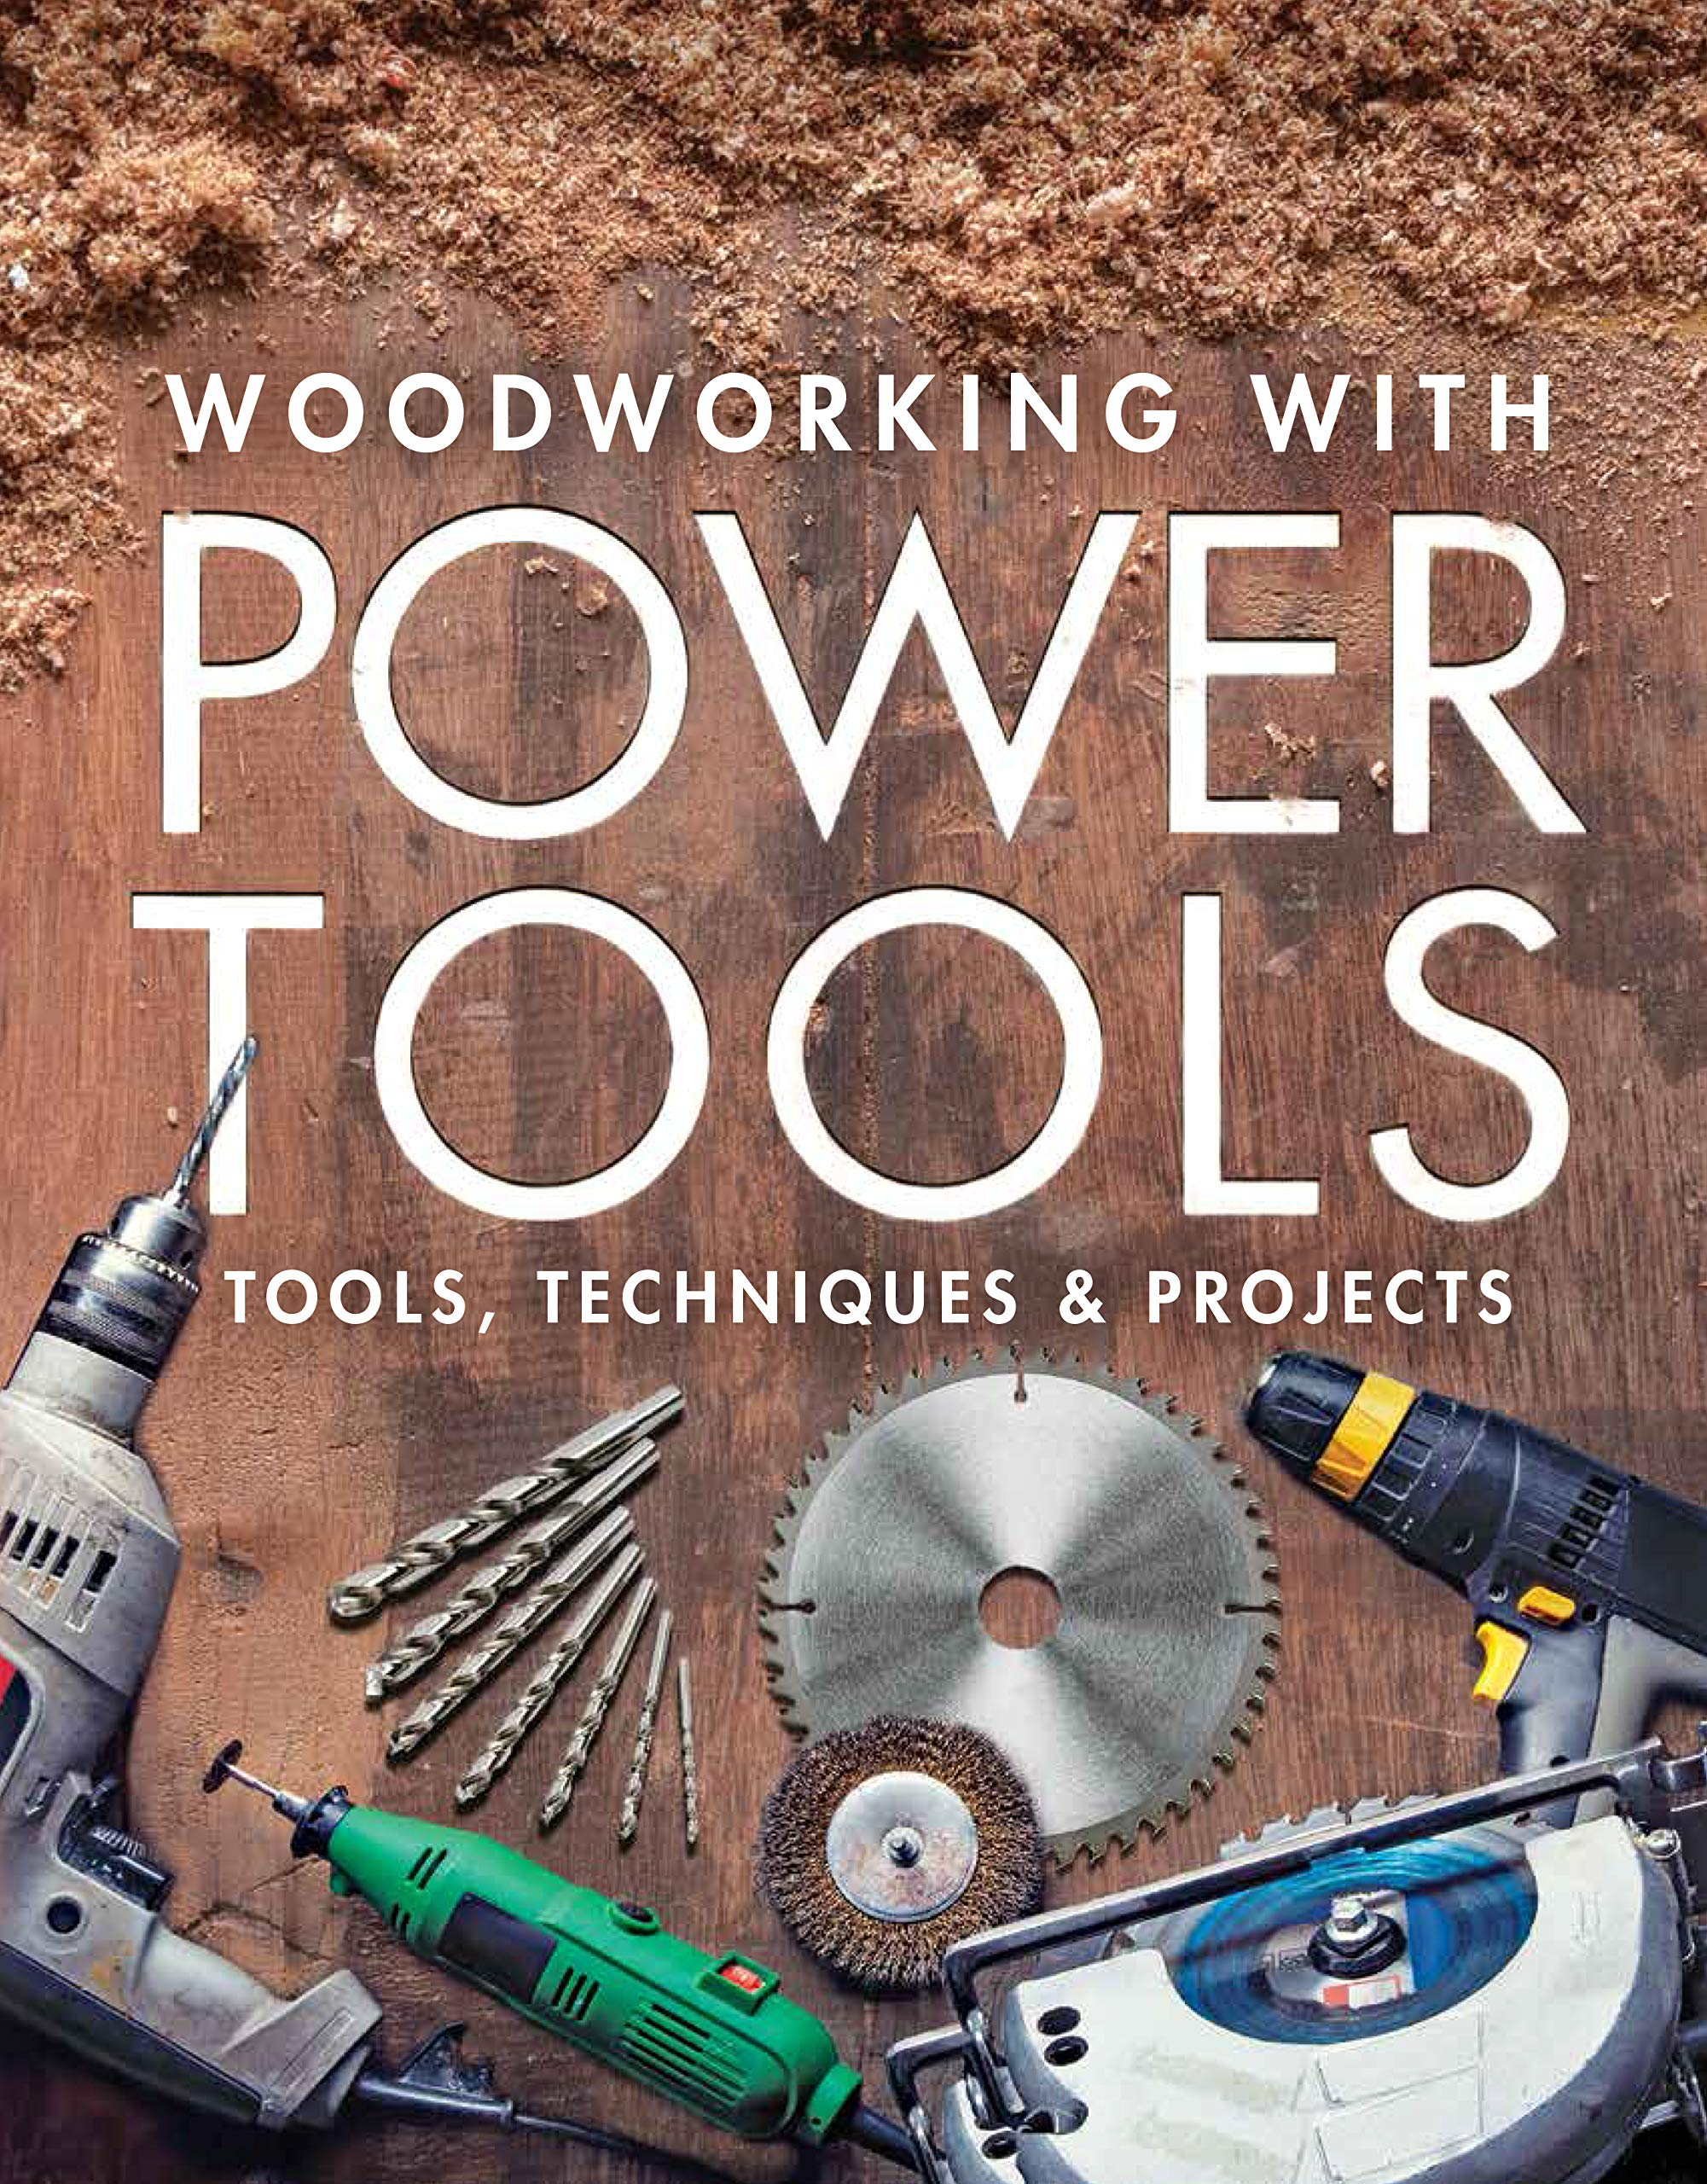 Woodworking With Power Tools Tools Techniques Projects